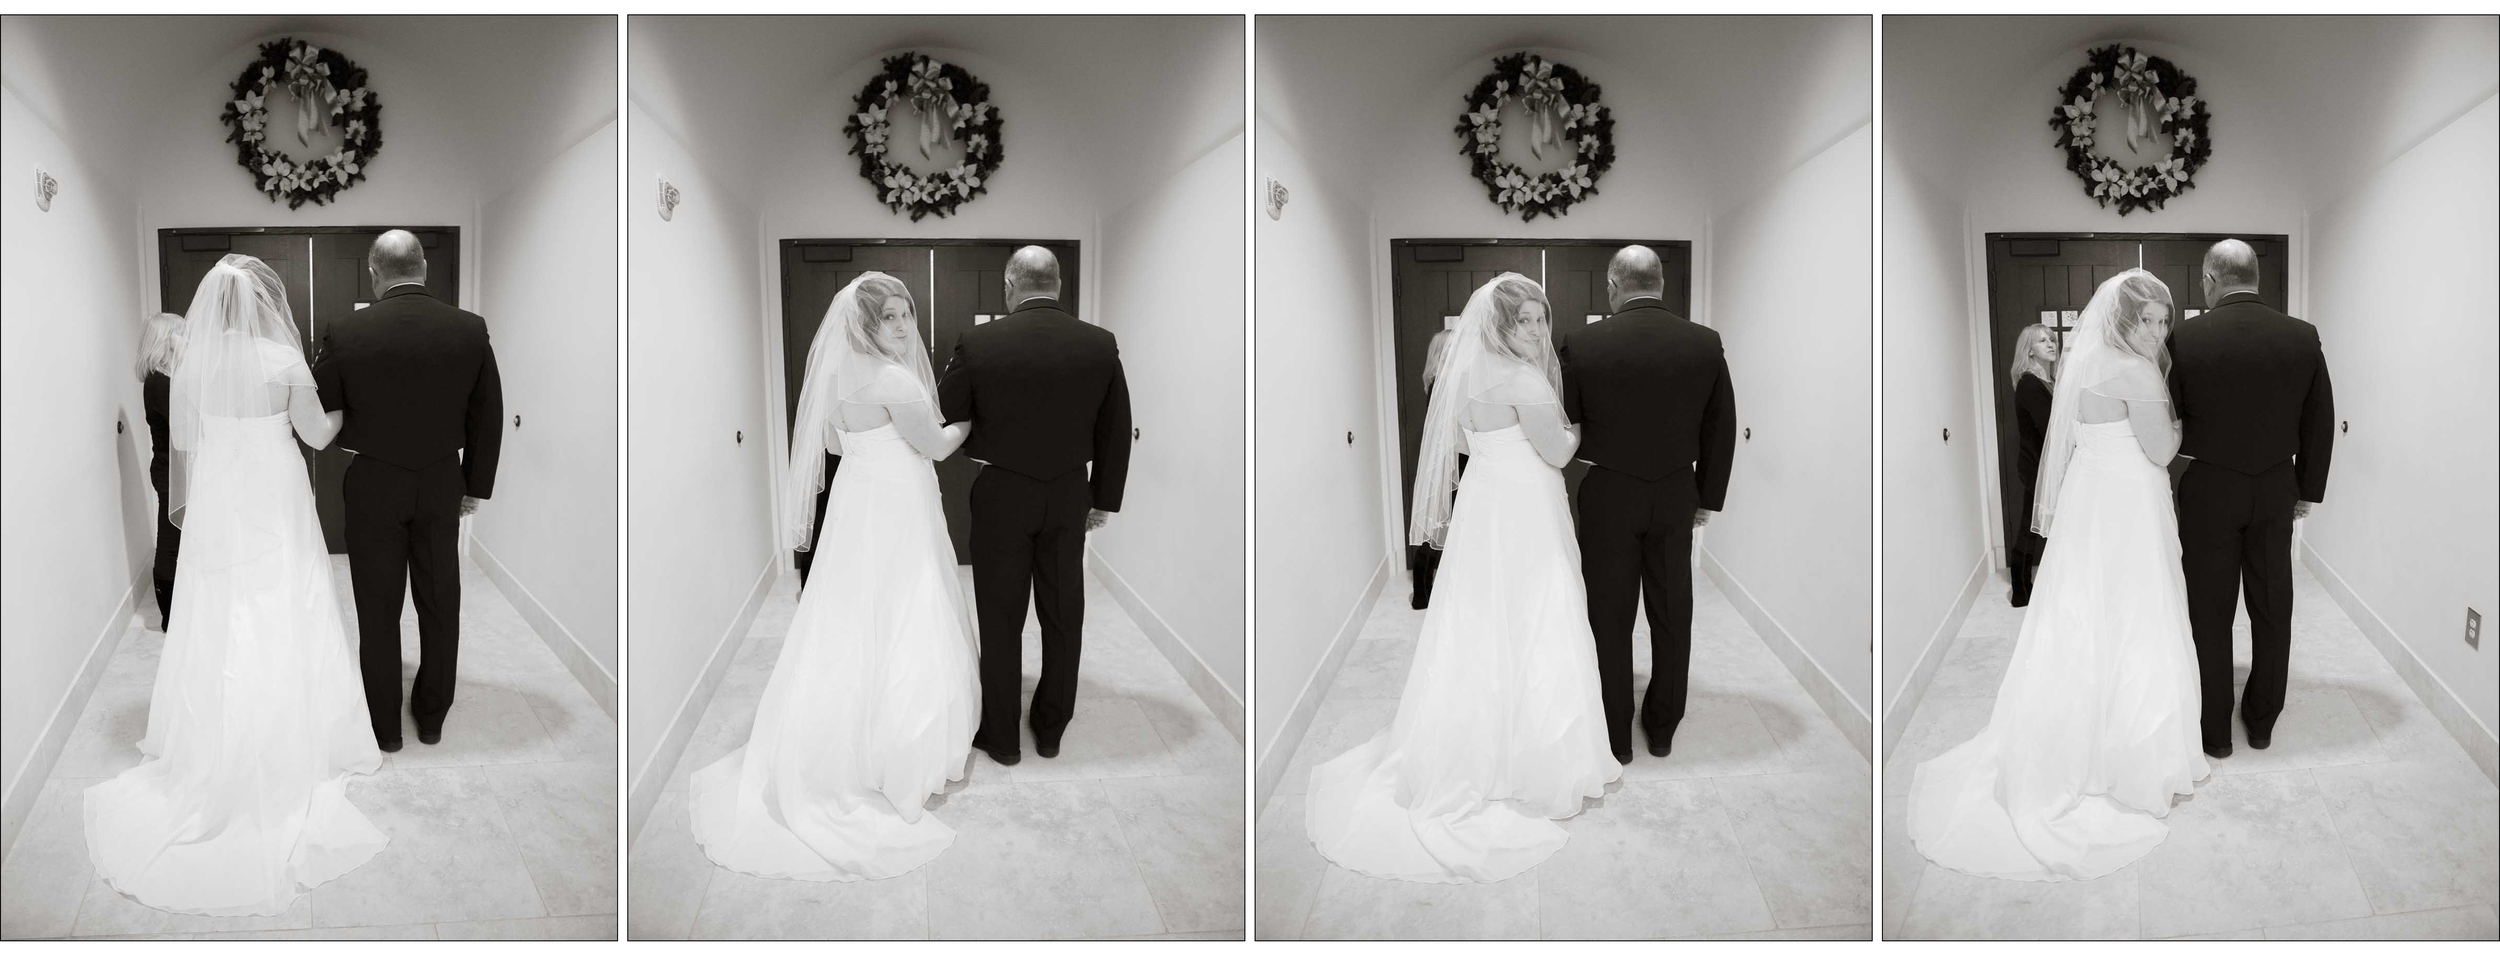 One last look back before heading down the aisle . . .